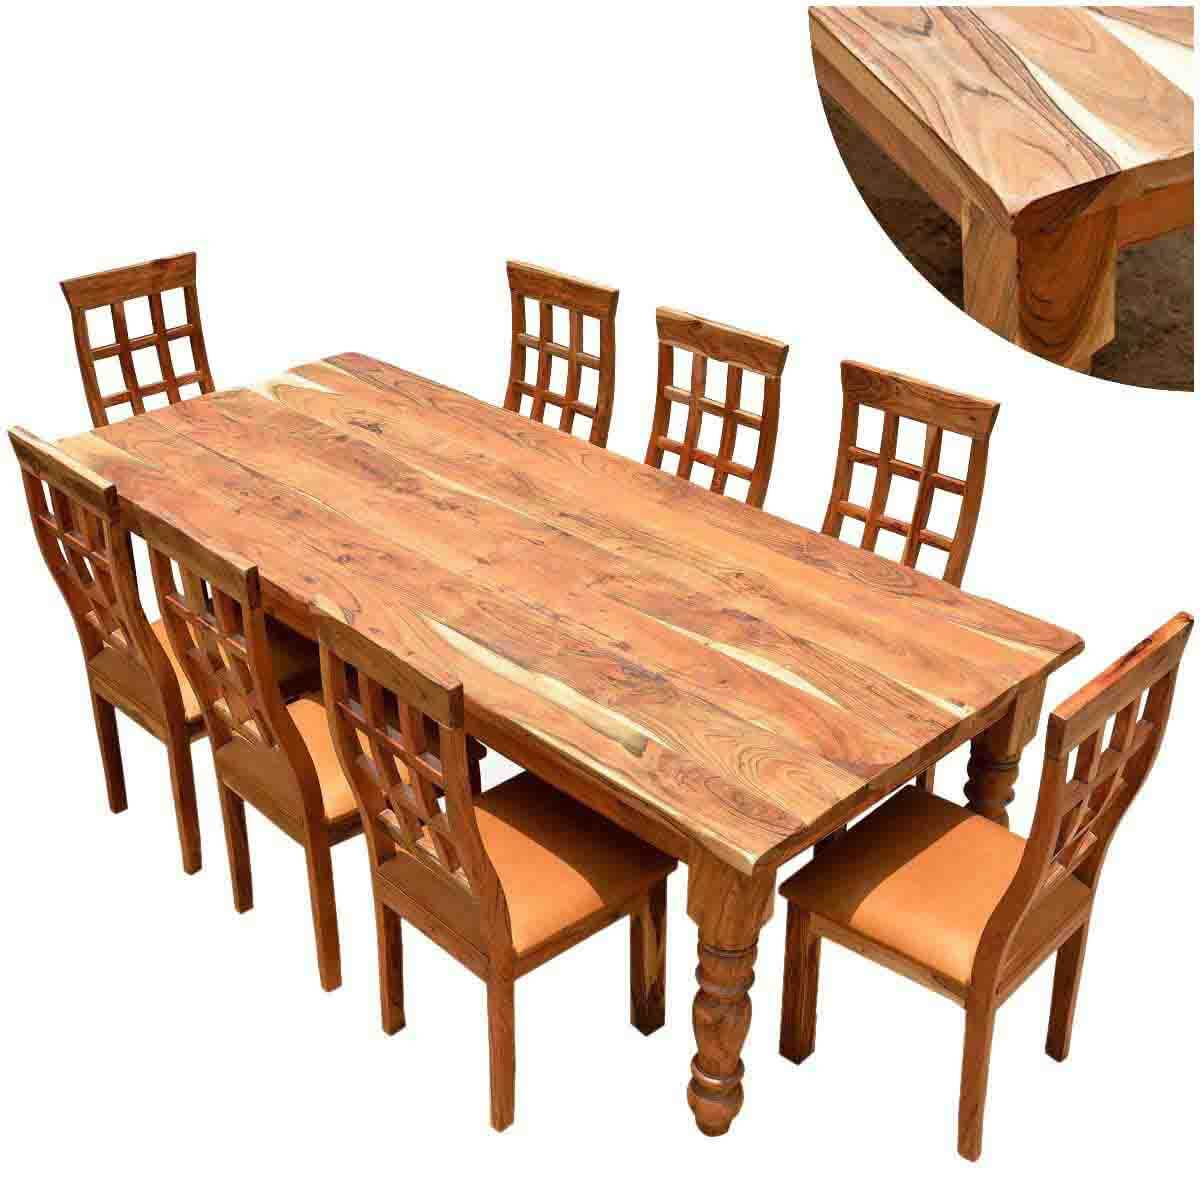 Wooden Dining Table Set ~ Rustic dining table and chair sets sierra living concepts